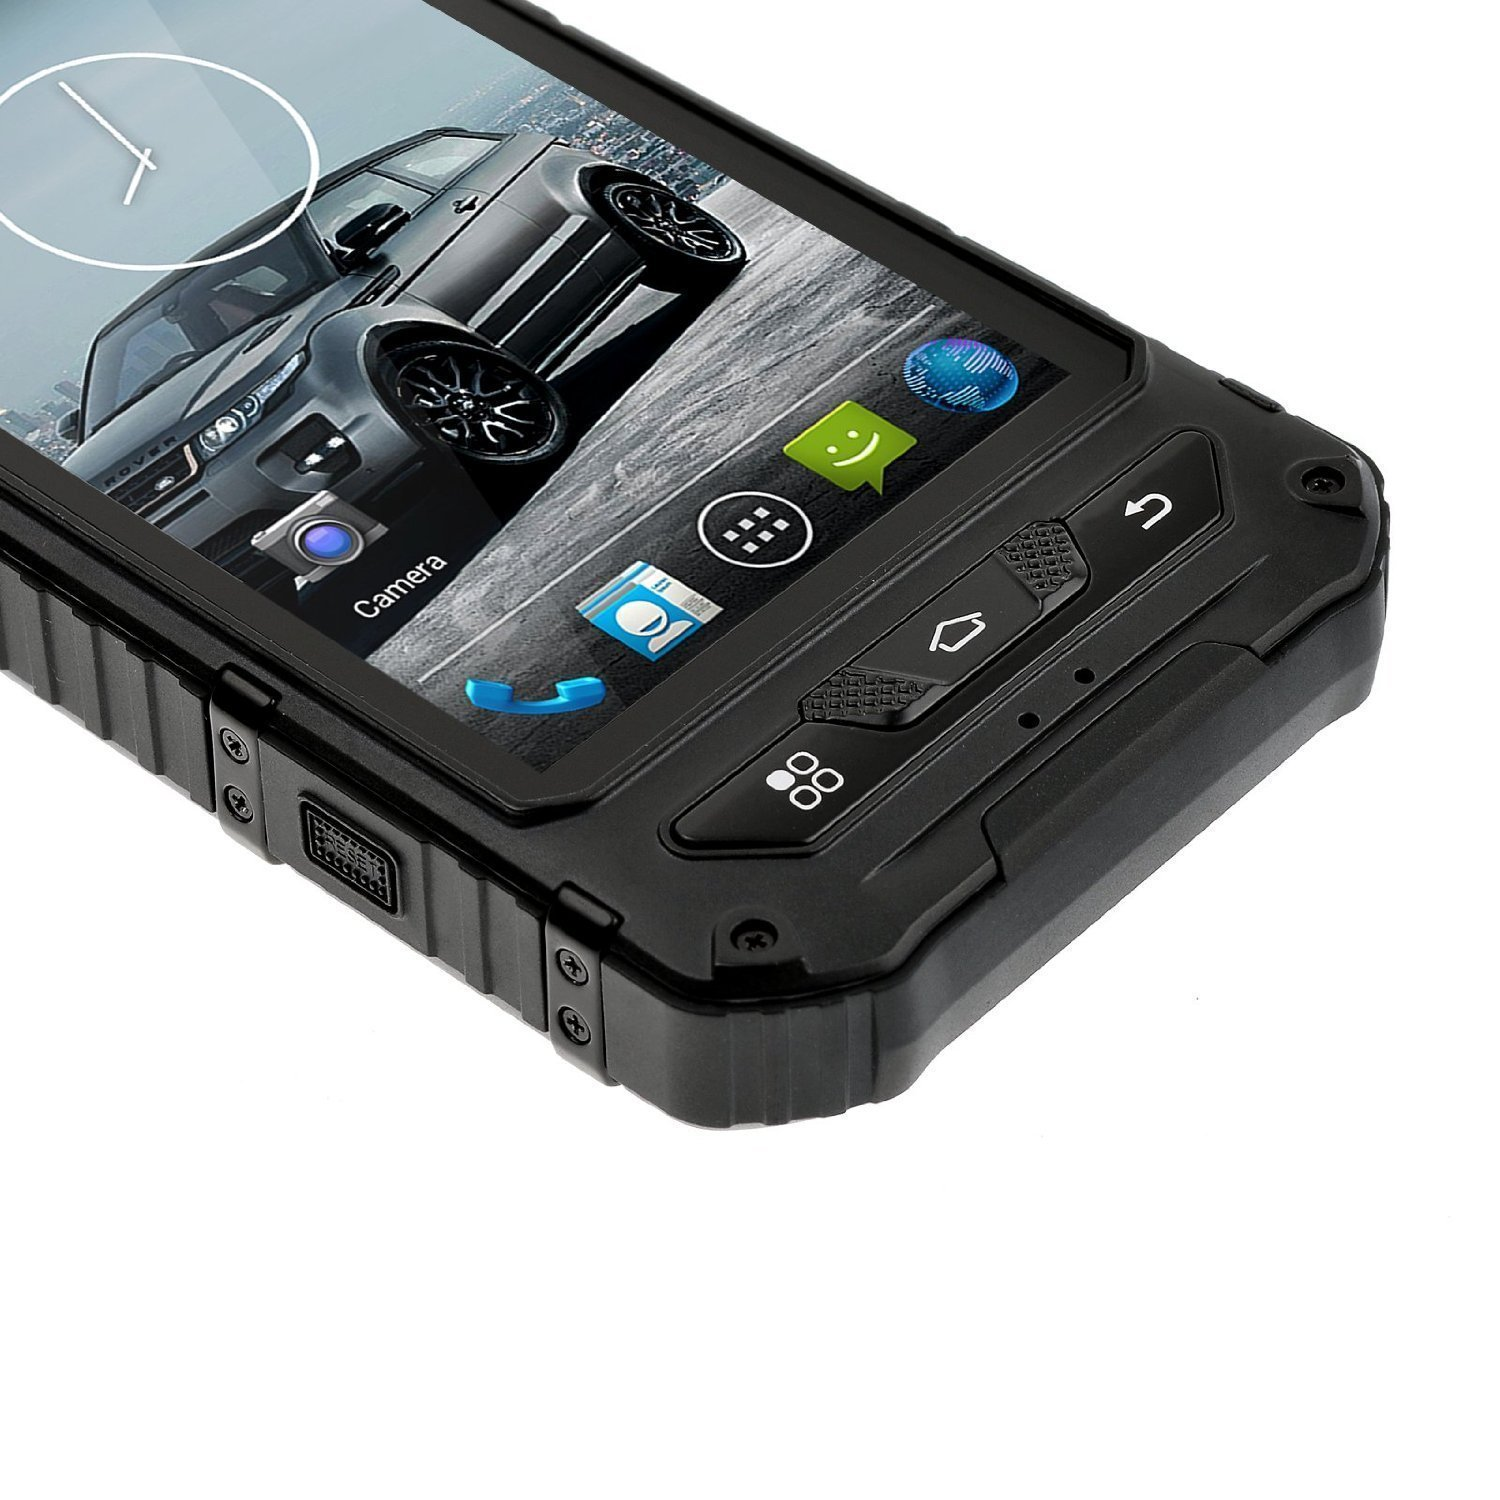 Amazon.com: Sudroid A8 4 Inches IP68 Rugged Smartphones With Android 4.4.2  Os And Quad Core Dual Sim Supporting NFC (Black): Cell Phones U0026 Accessories